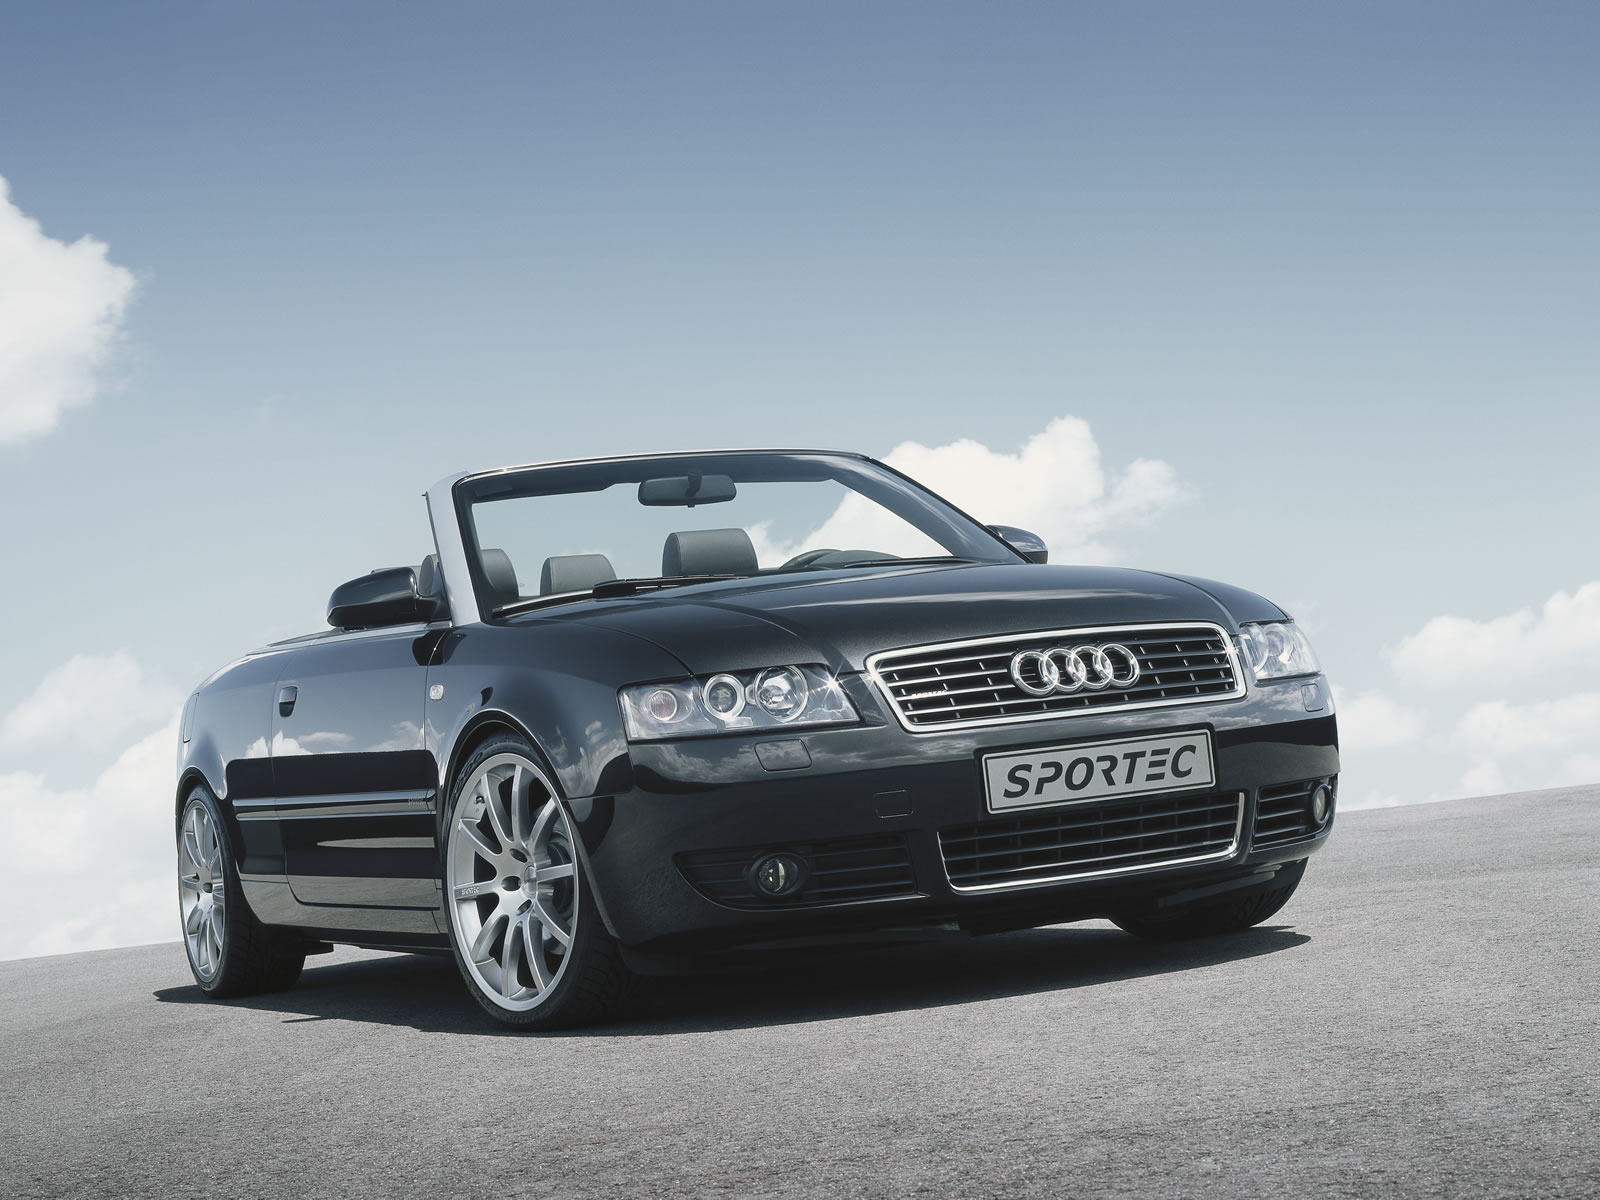 Sportec Audi A4 Cabriolet SP460 photo 14312